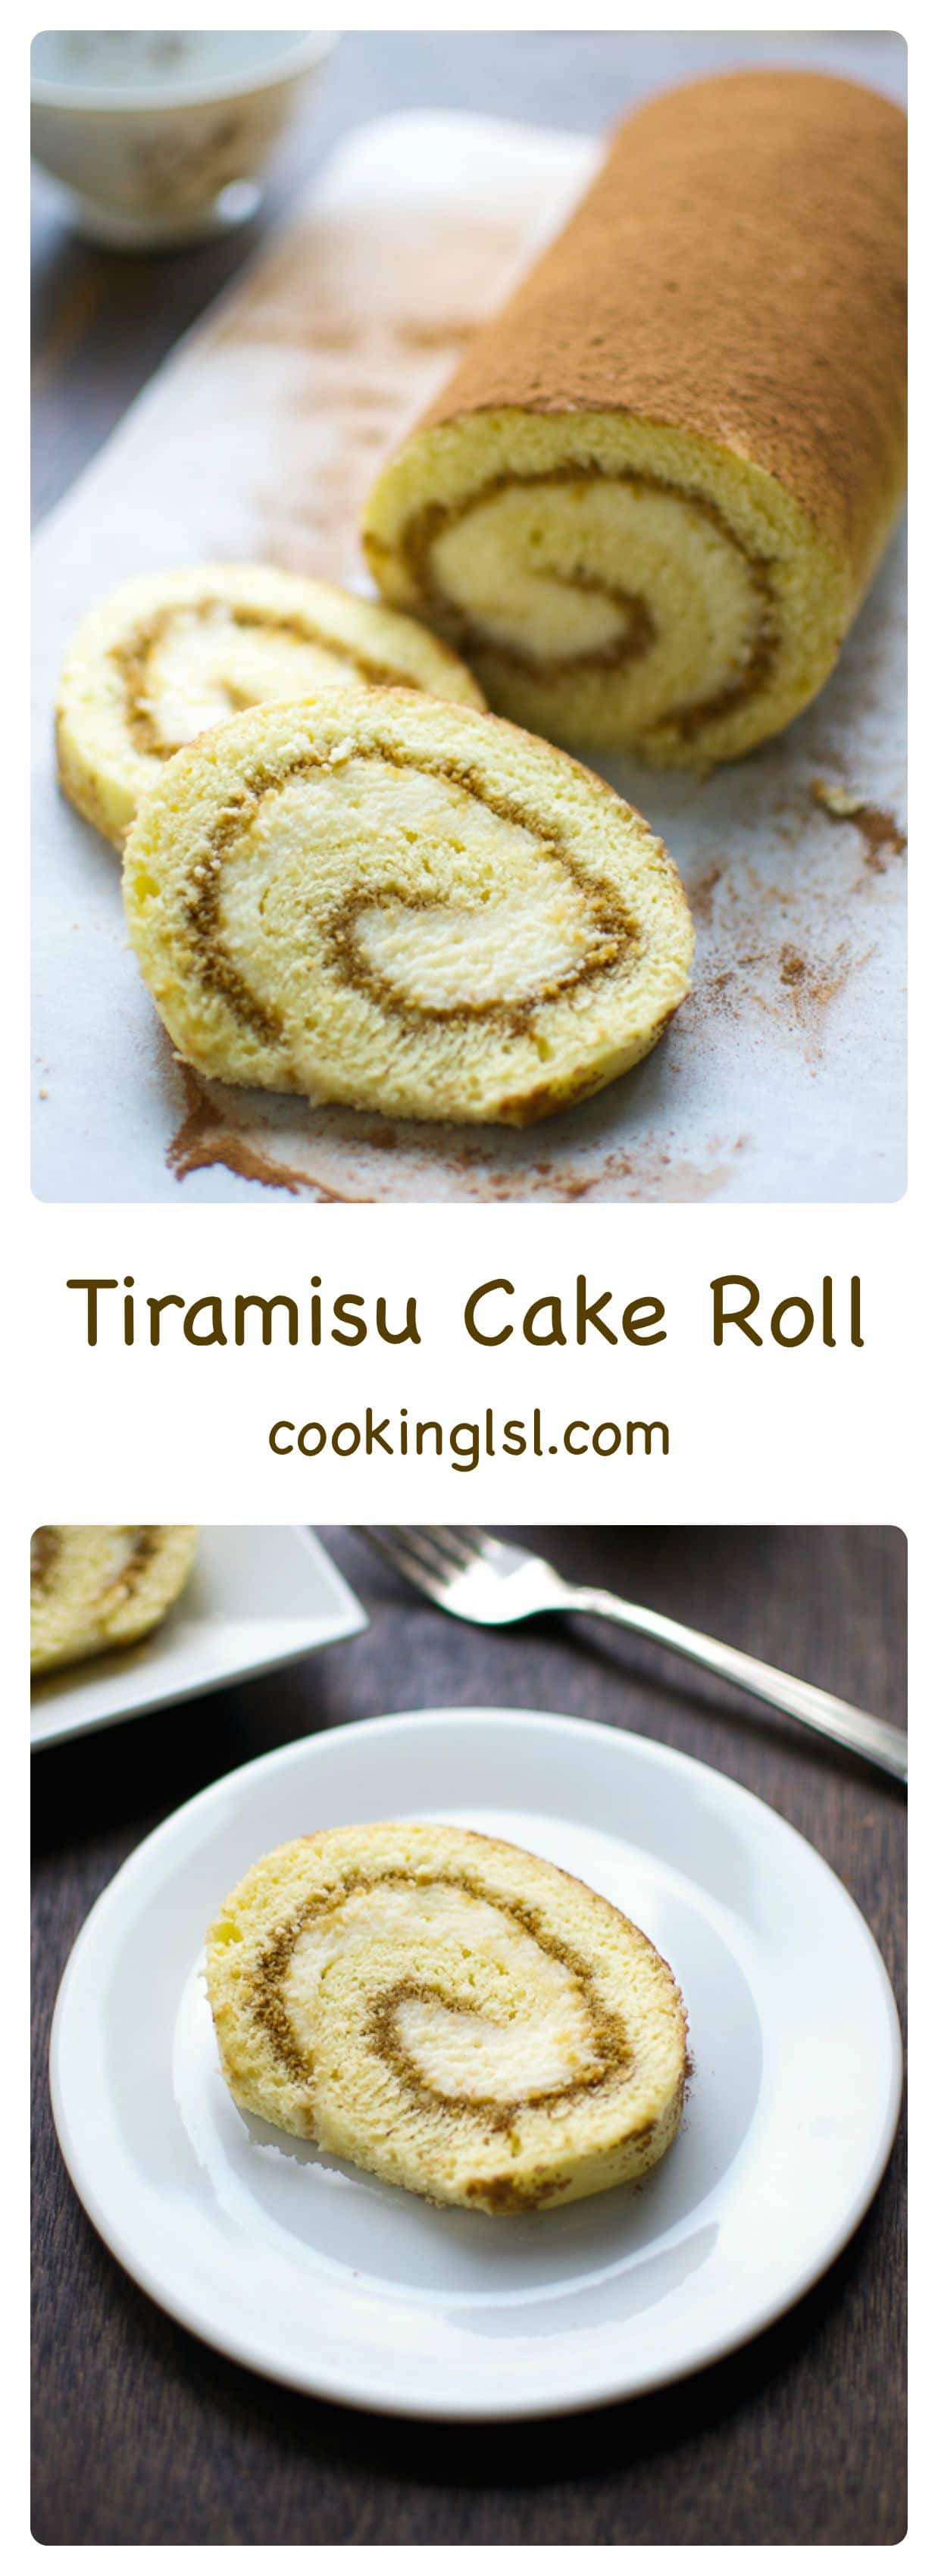 Tiramisu cake roll recipe - espresso flavored sponge cake, brushed with coffee syrup and filled with Mascarpone Cheese Cream filling. #espresso #Italian #tiramisu #tiramisucakeroll #swissroll #cakeroll